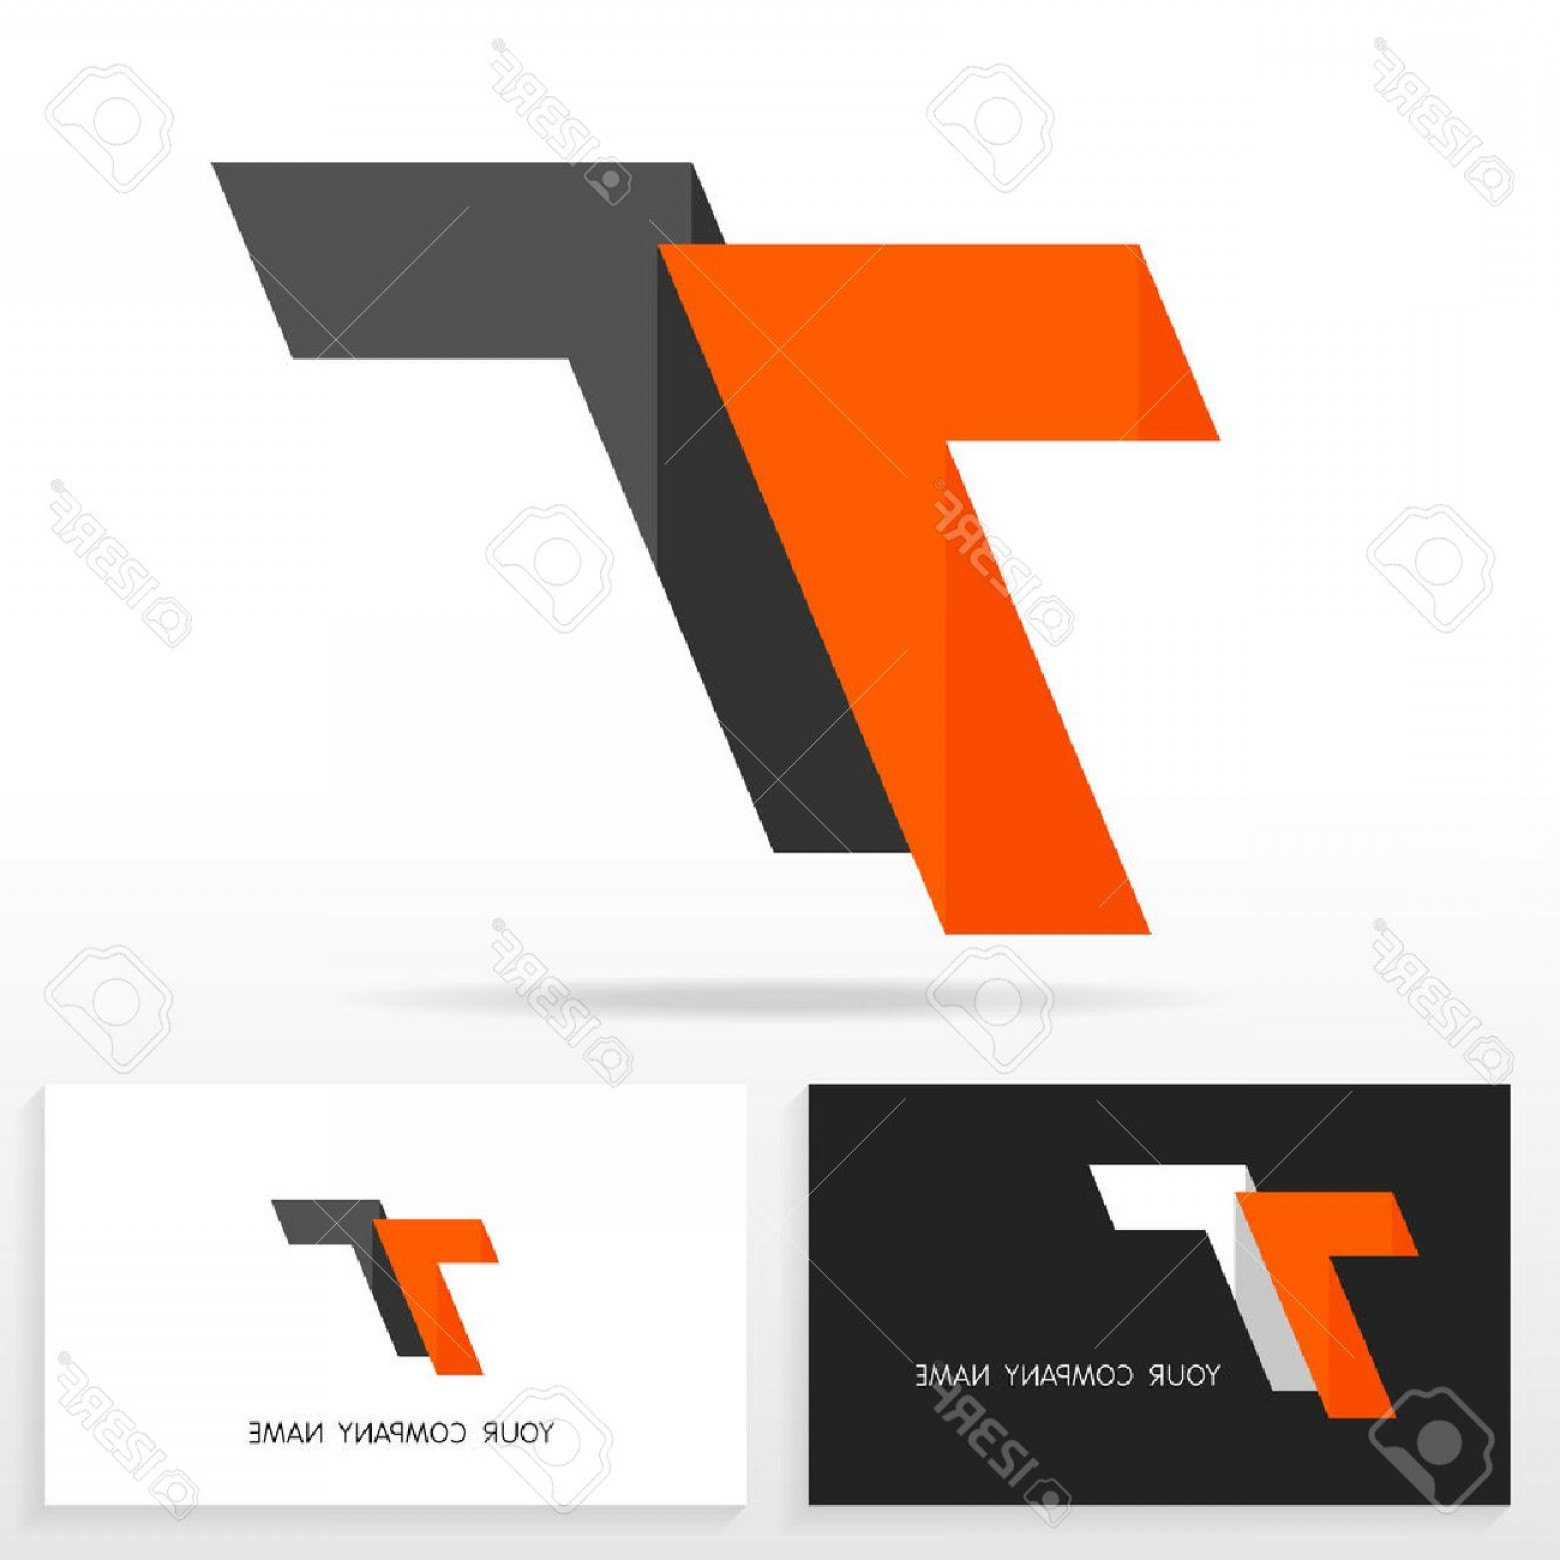 T Vector: Photostock Vector Letter T Logo Design Vector Sign Business Card Templates